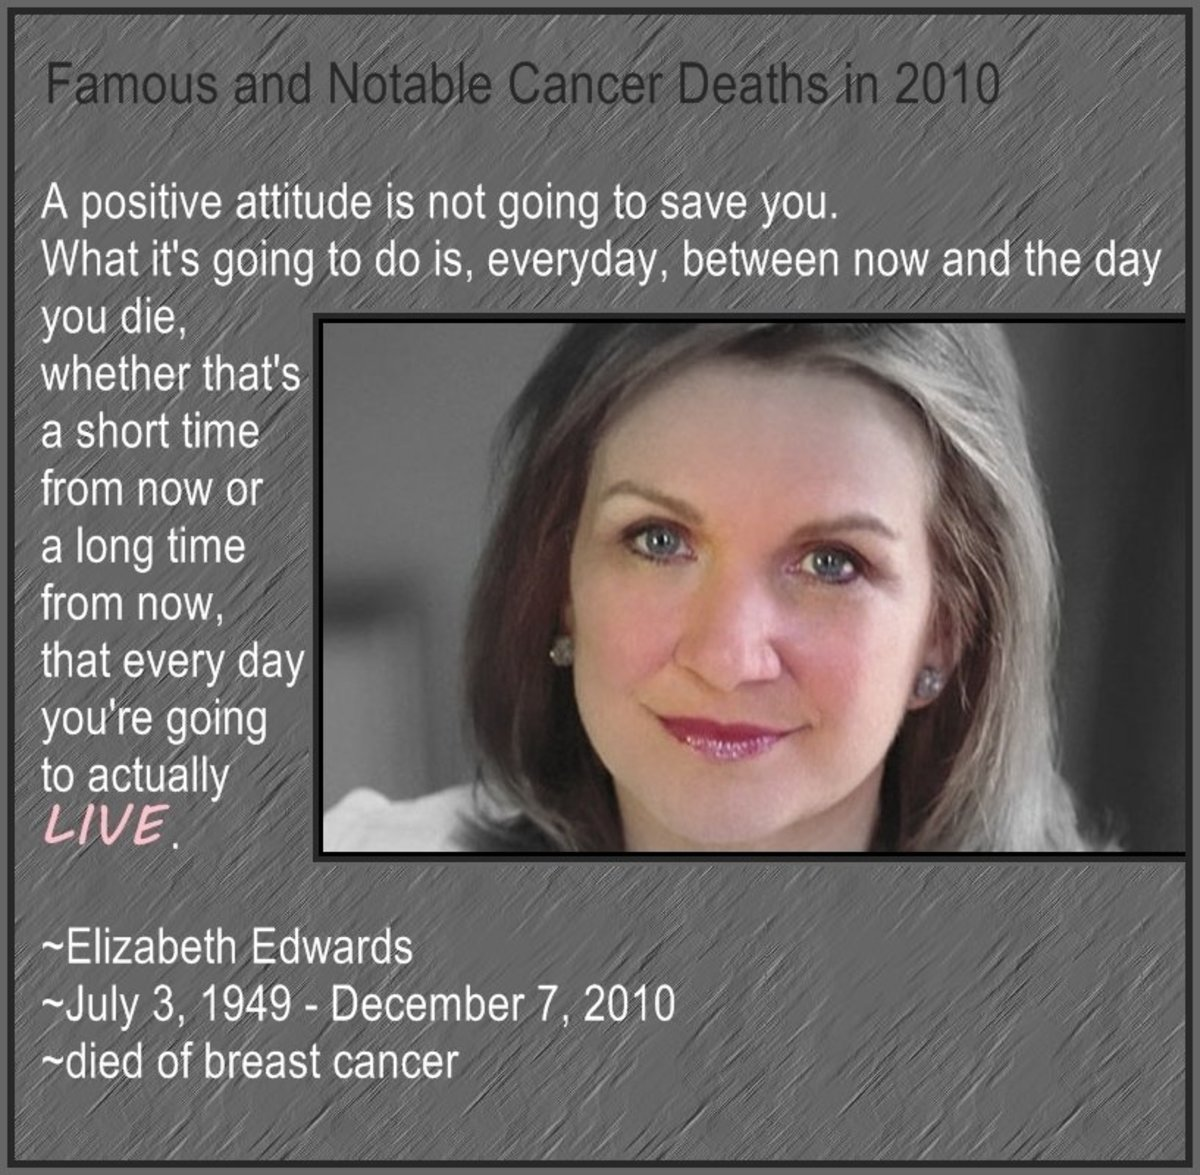 - Famous and Notable Cancer Deaths in 2010, by Rosie2010 -